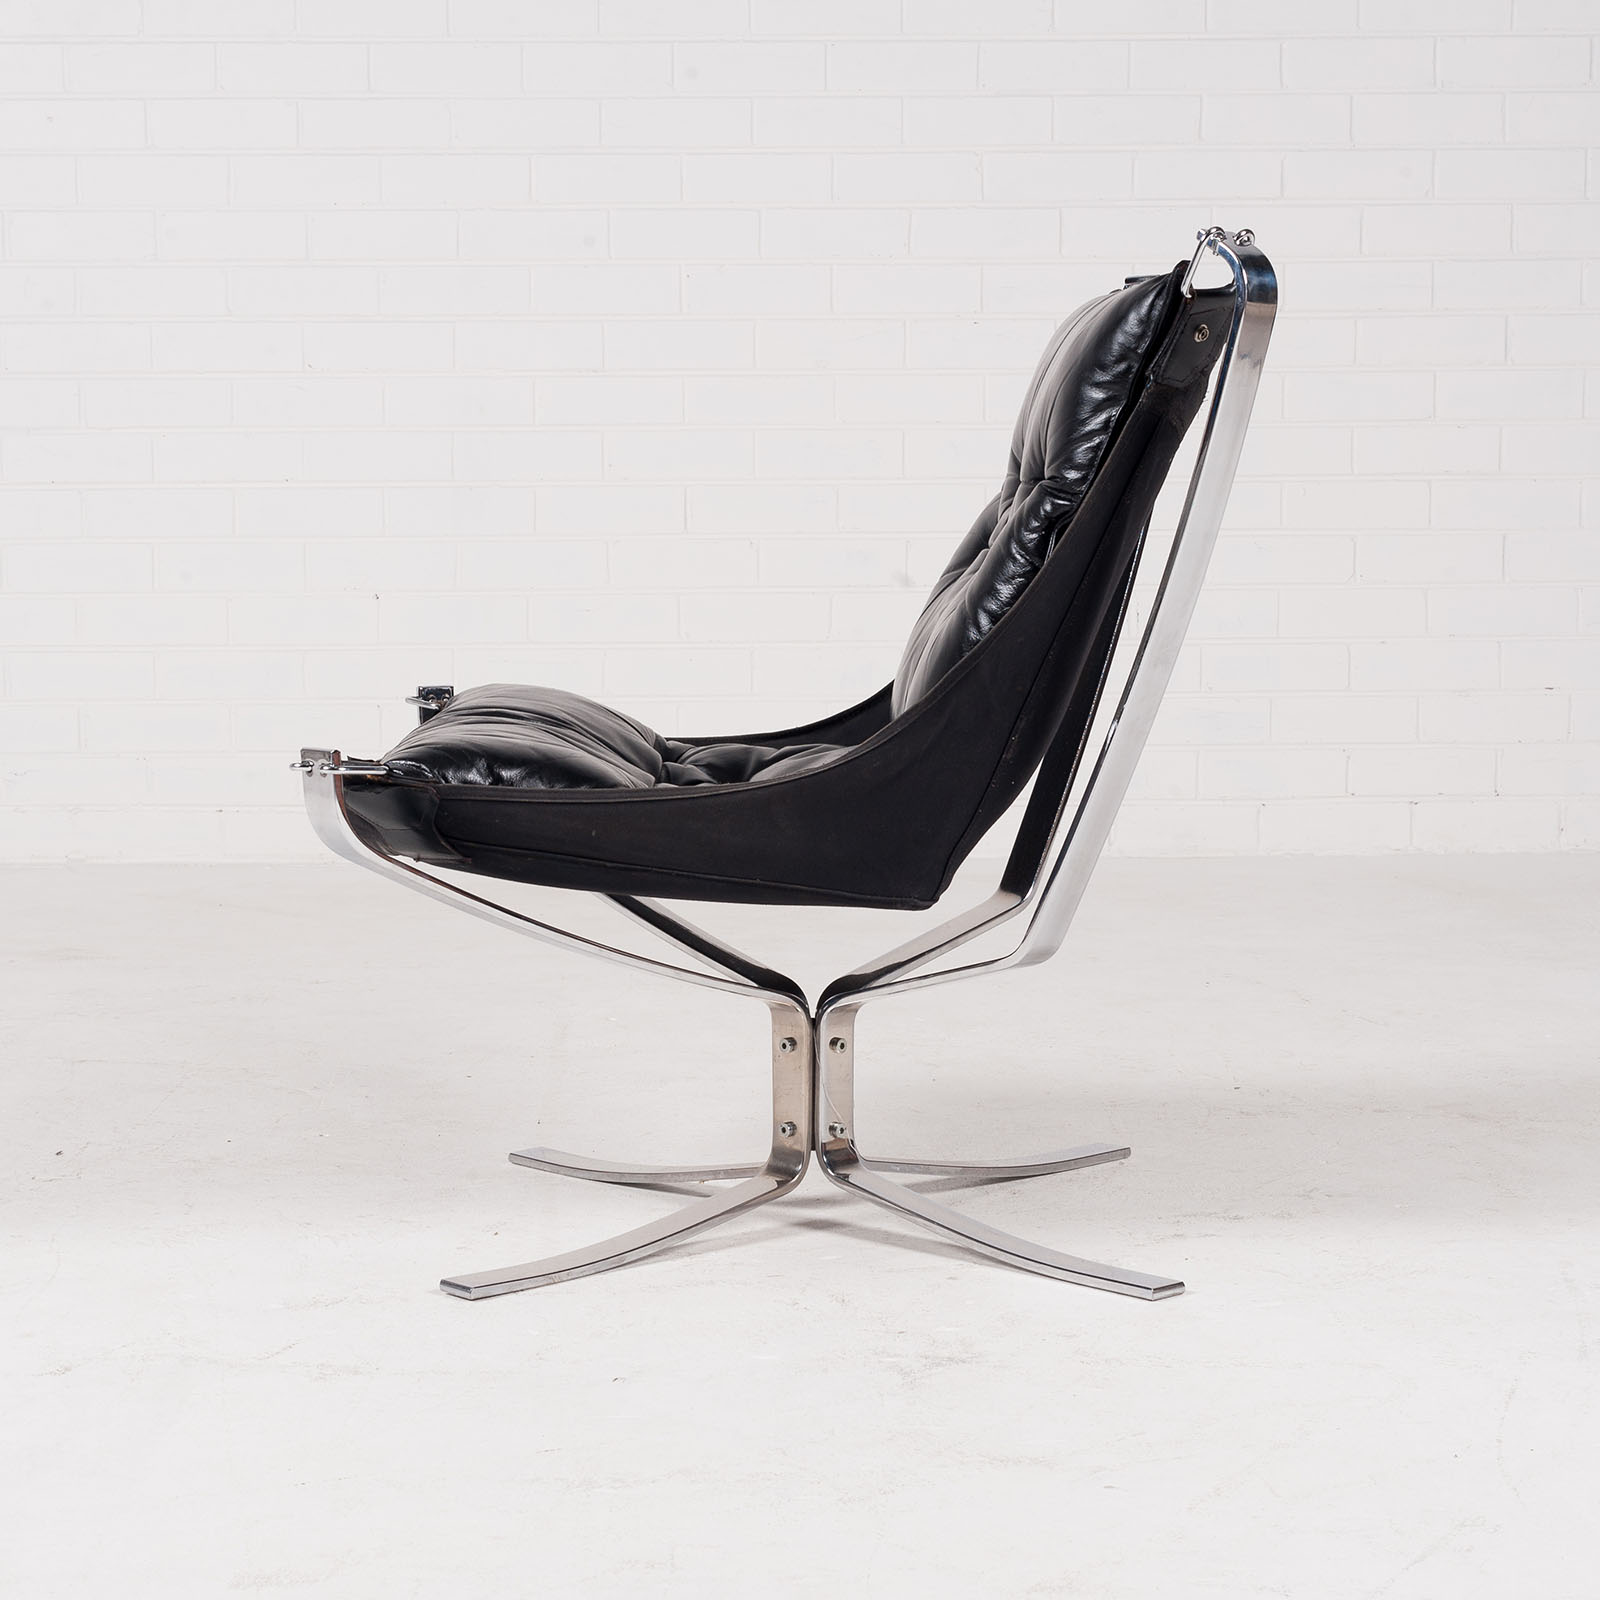 Low Back Falcon Armchair By Sigurd Resell For Vatne Mobler In Black Leather With Chrome Frame 1960s Denmark 03